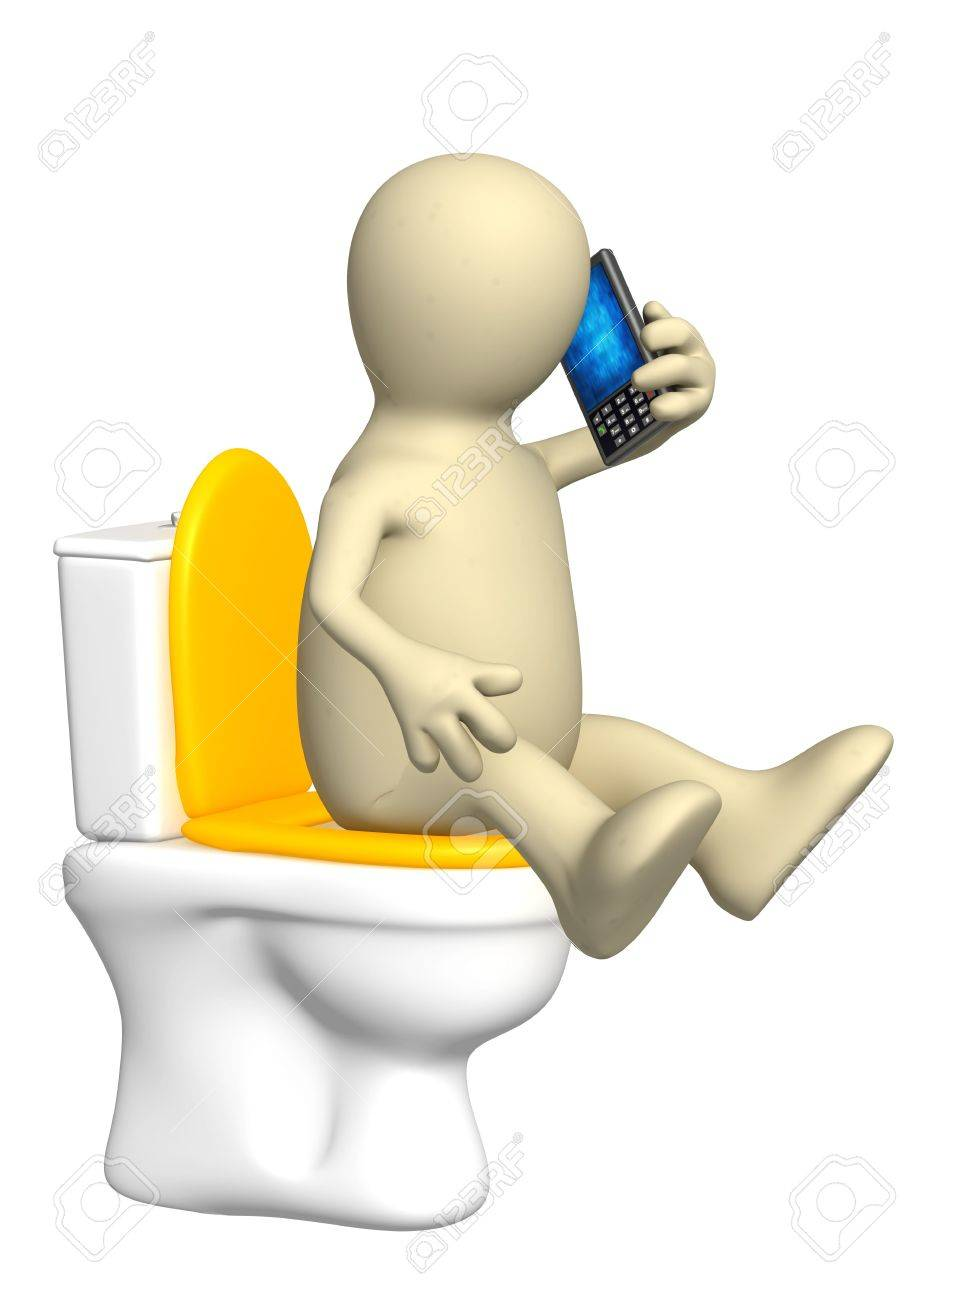 3d puppet, sitting with a phone on toilet bowl Stock Photo - 6757601